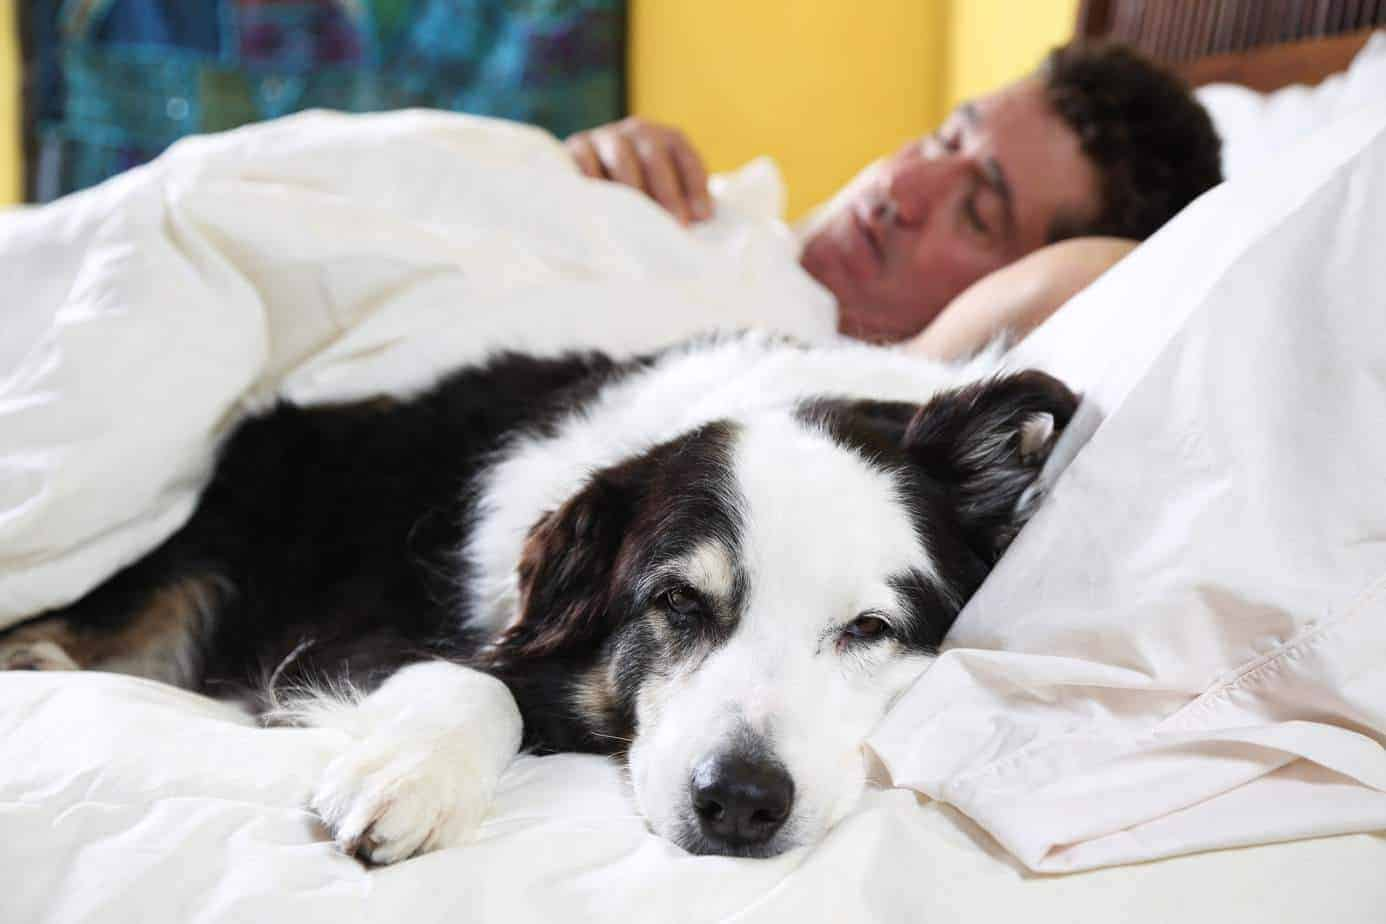 Border collie snuggles next to sleeping man. Entertain your dog: Try interactive games, automatic ball launchers, hide and seek, or use a dog walker when you are feeling ill.